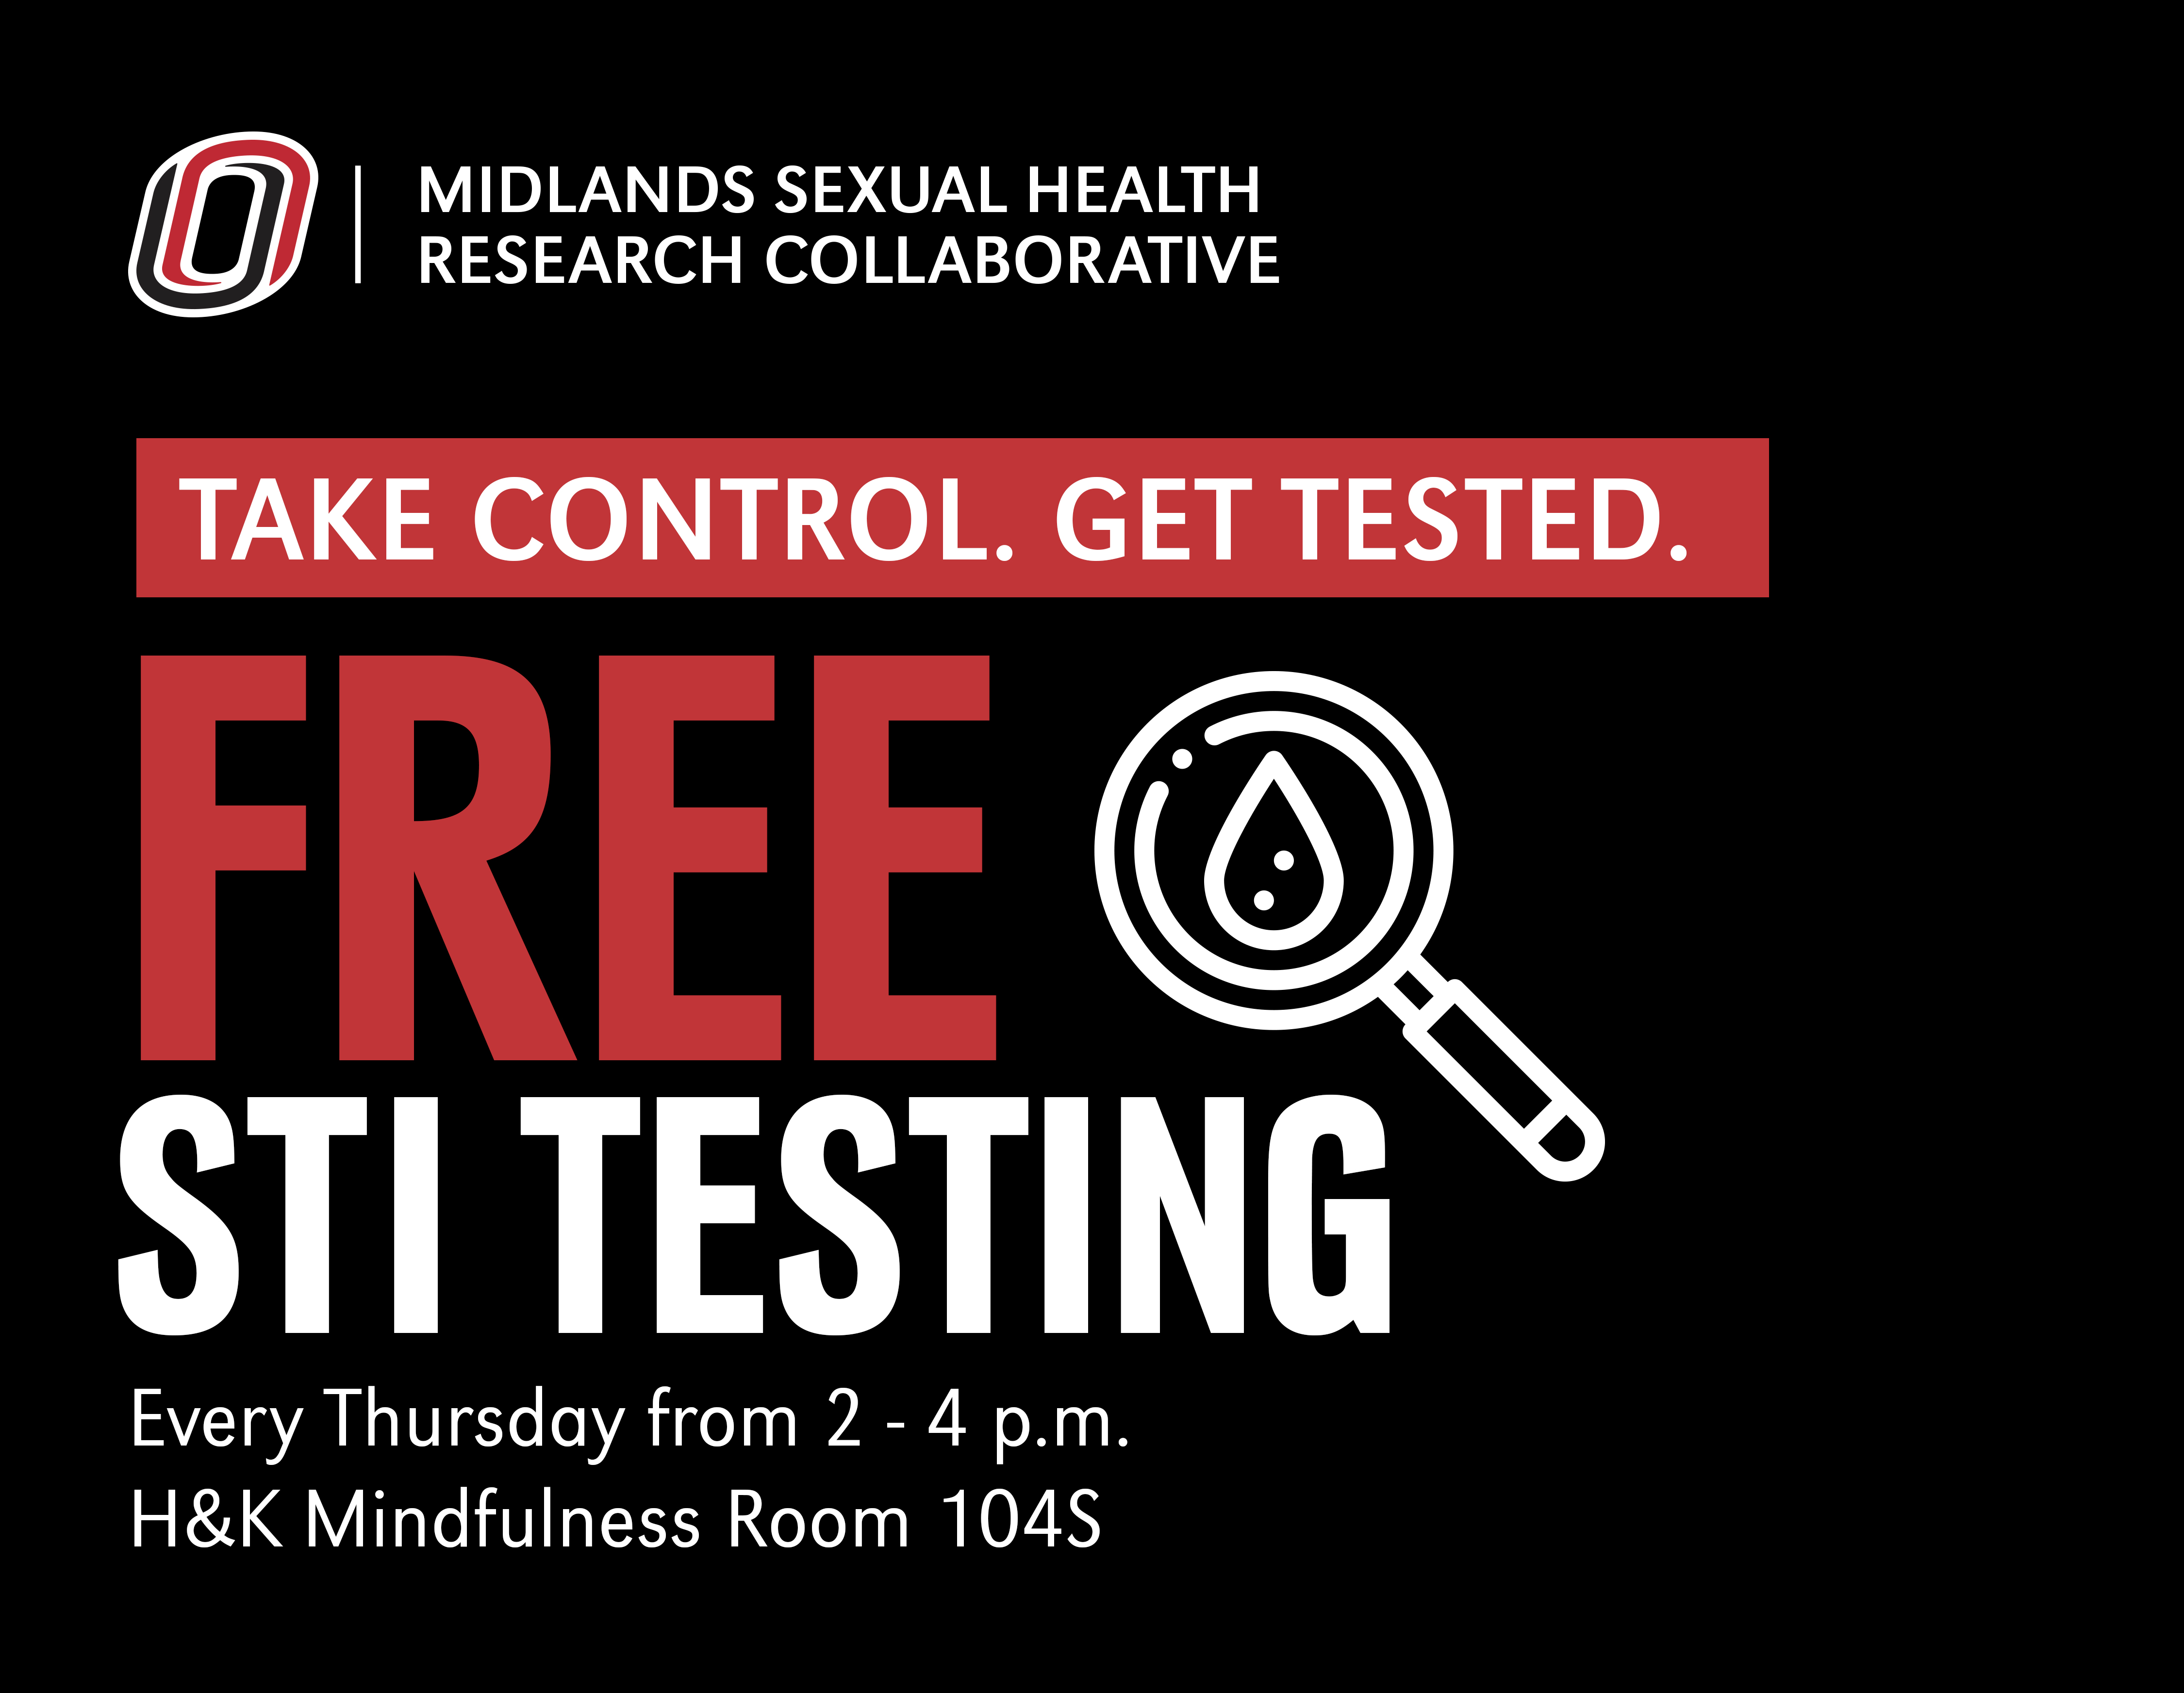 An advertisement for free STI testing at UNO